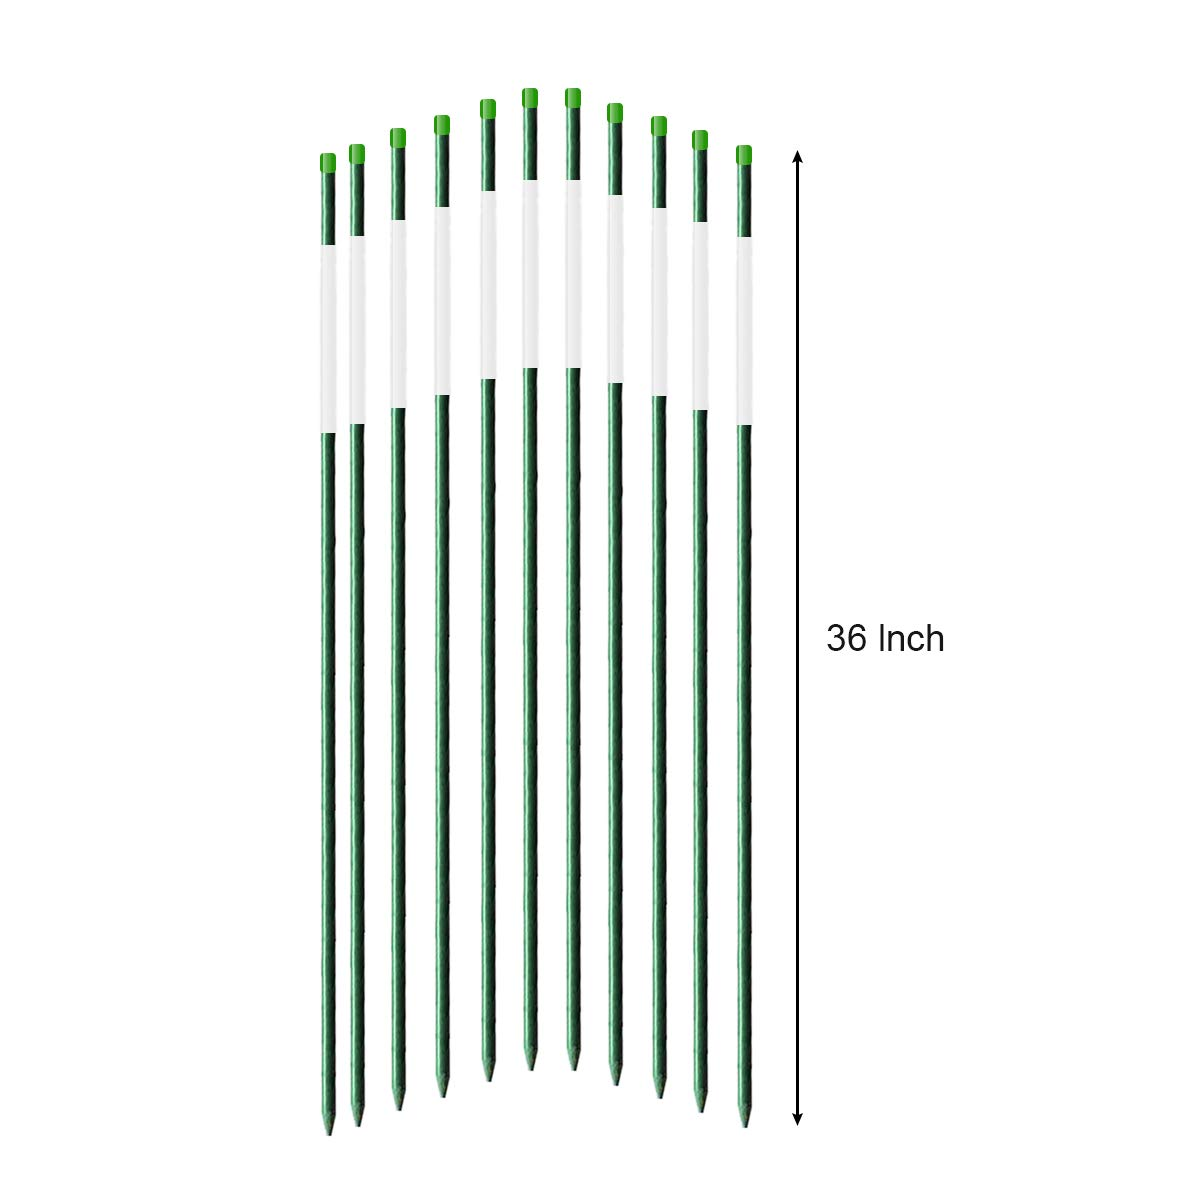 FiberMarker 48-Inch Reflective Driveway Markers Driveway Poles for Easy Visibility at Night 5/16-Inch Diameter Dark Green,20-Pack by FiberMarker